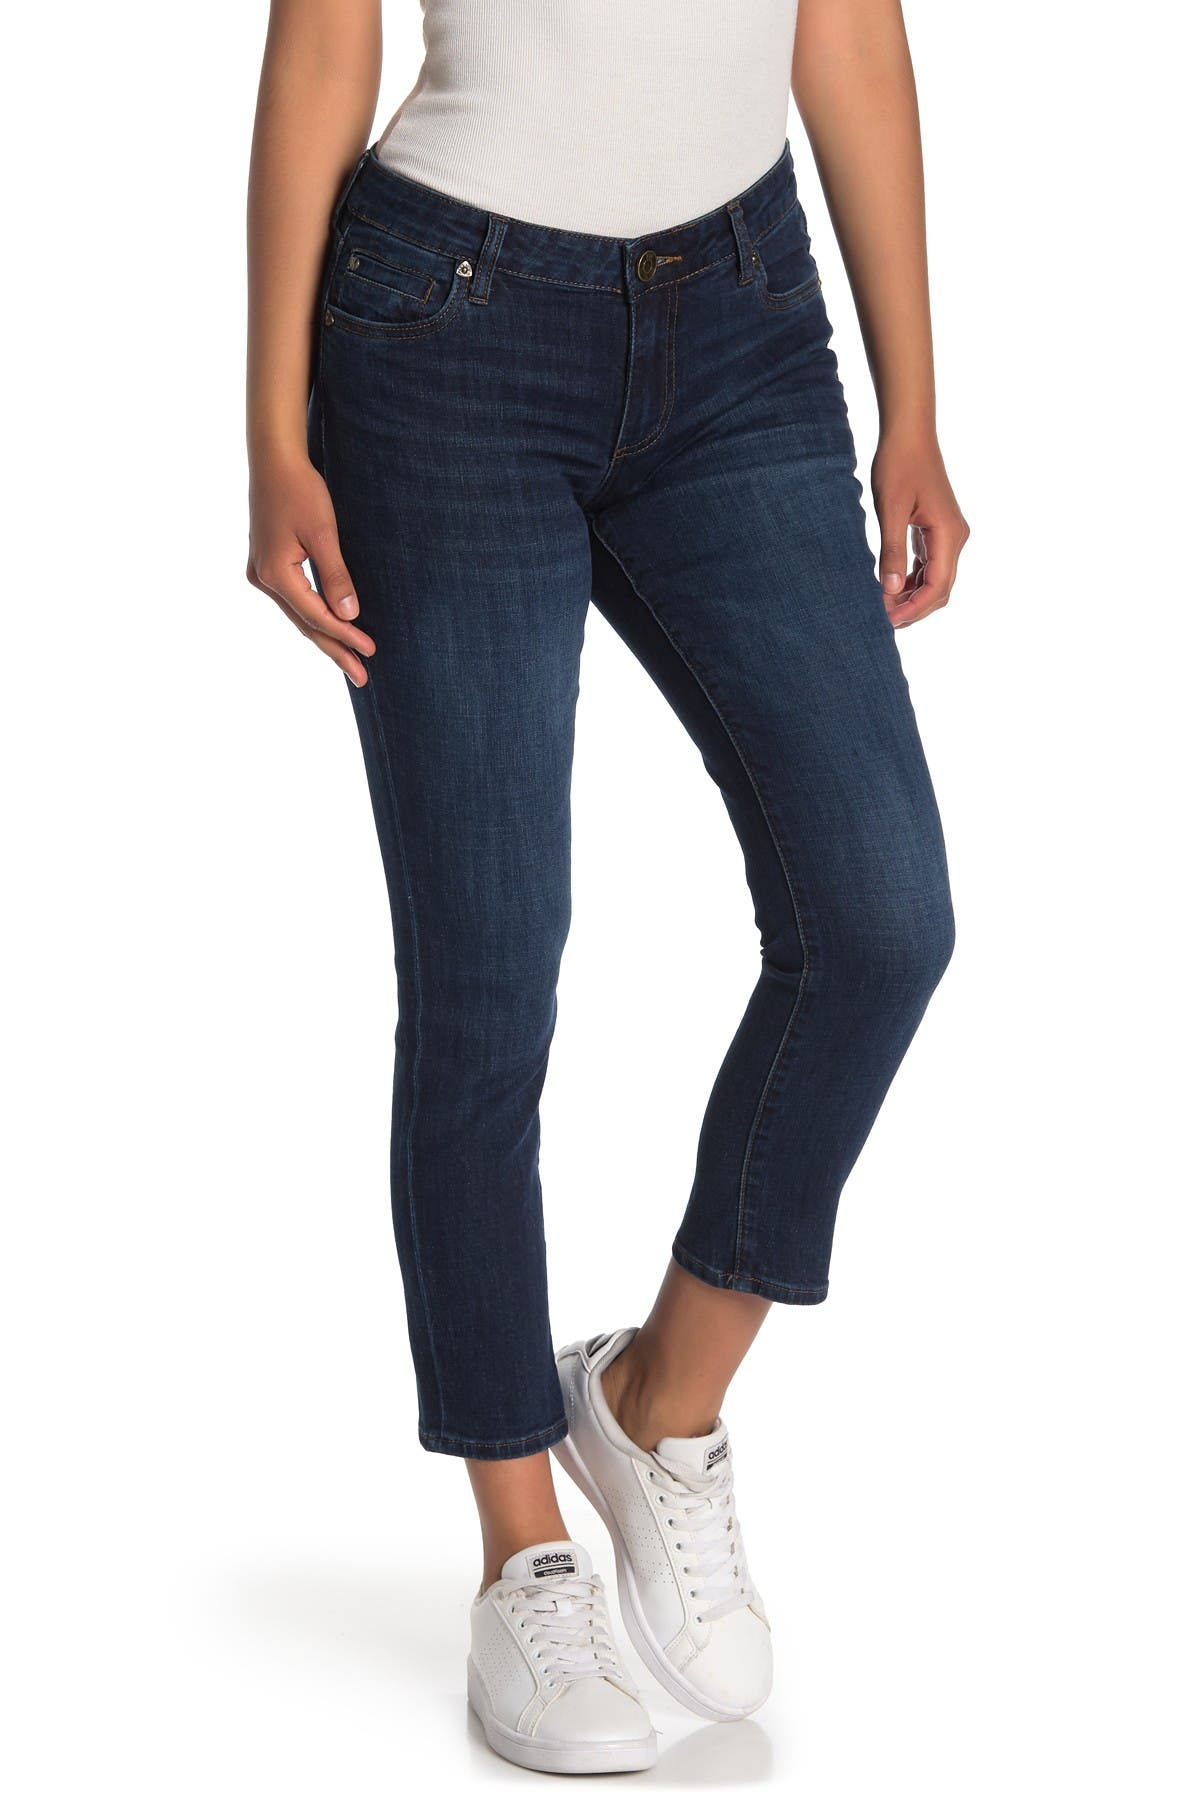 Image of KUT from the Kloth Katy Rolled Boyfriend Jeans